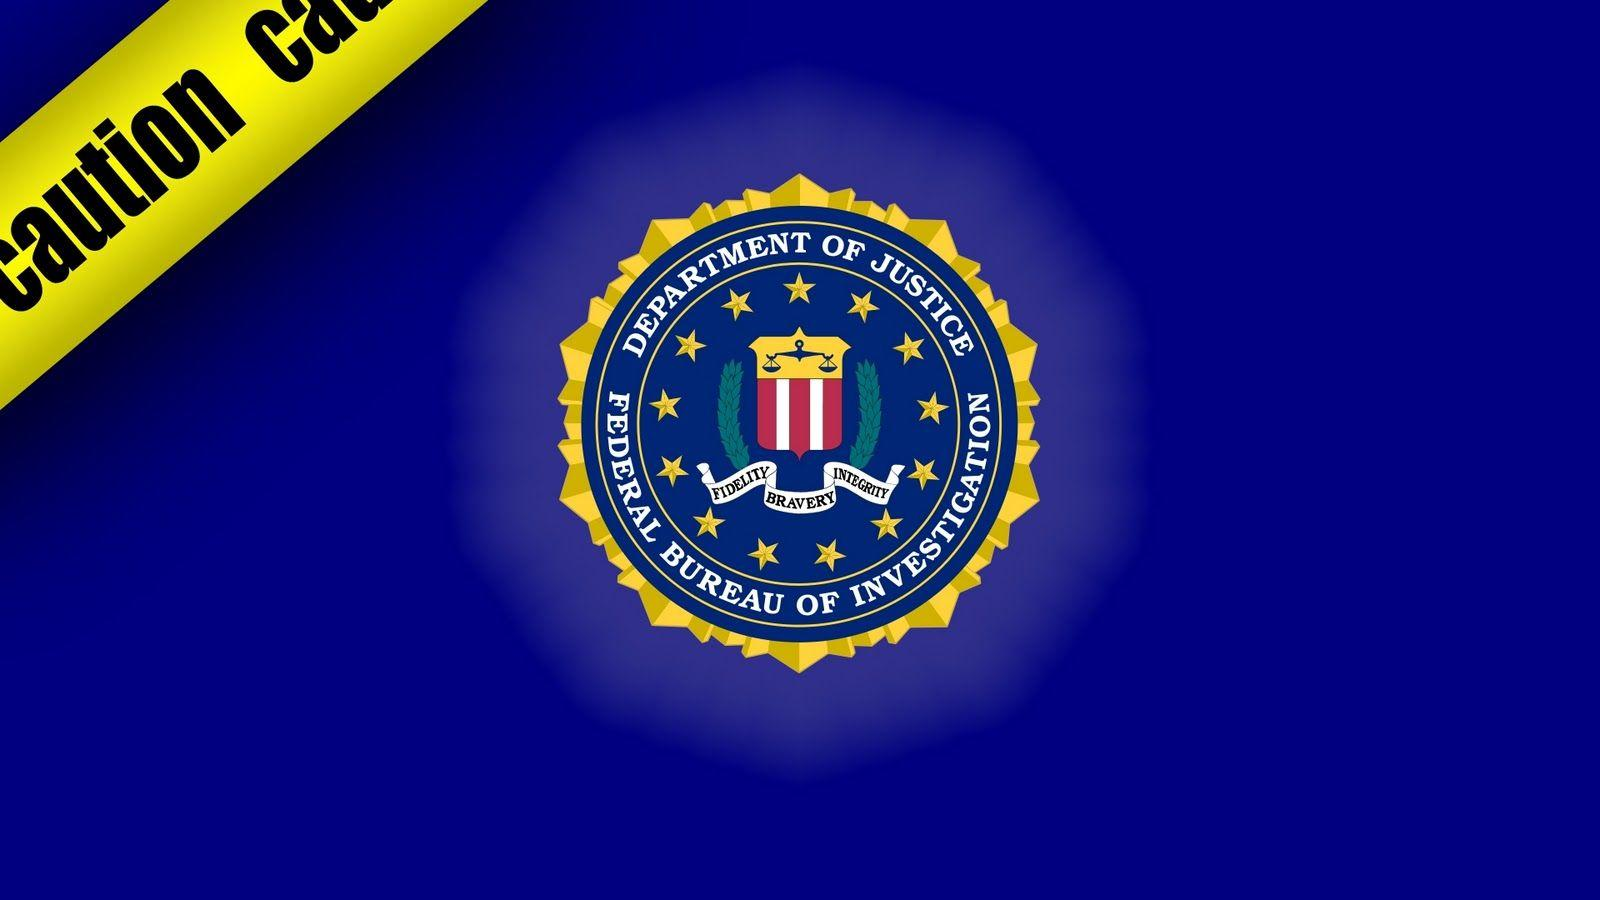 fbi logo wallpapers wallpaper cave. Black Bedroom Furniture Sets. Home Design Ideas